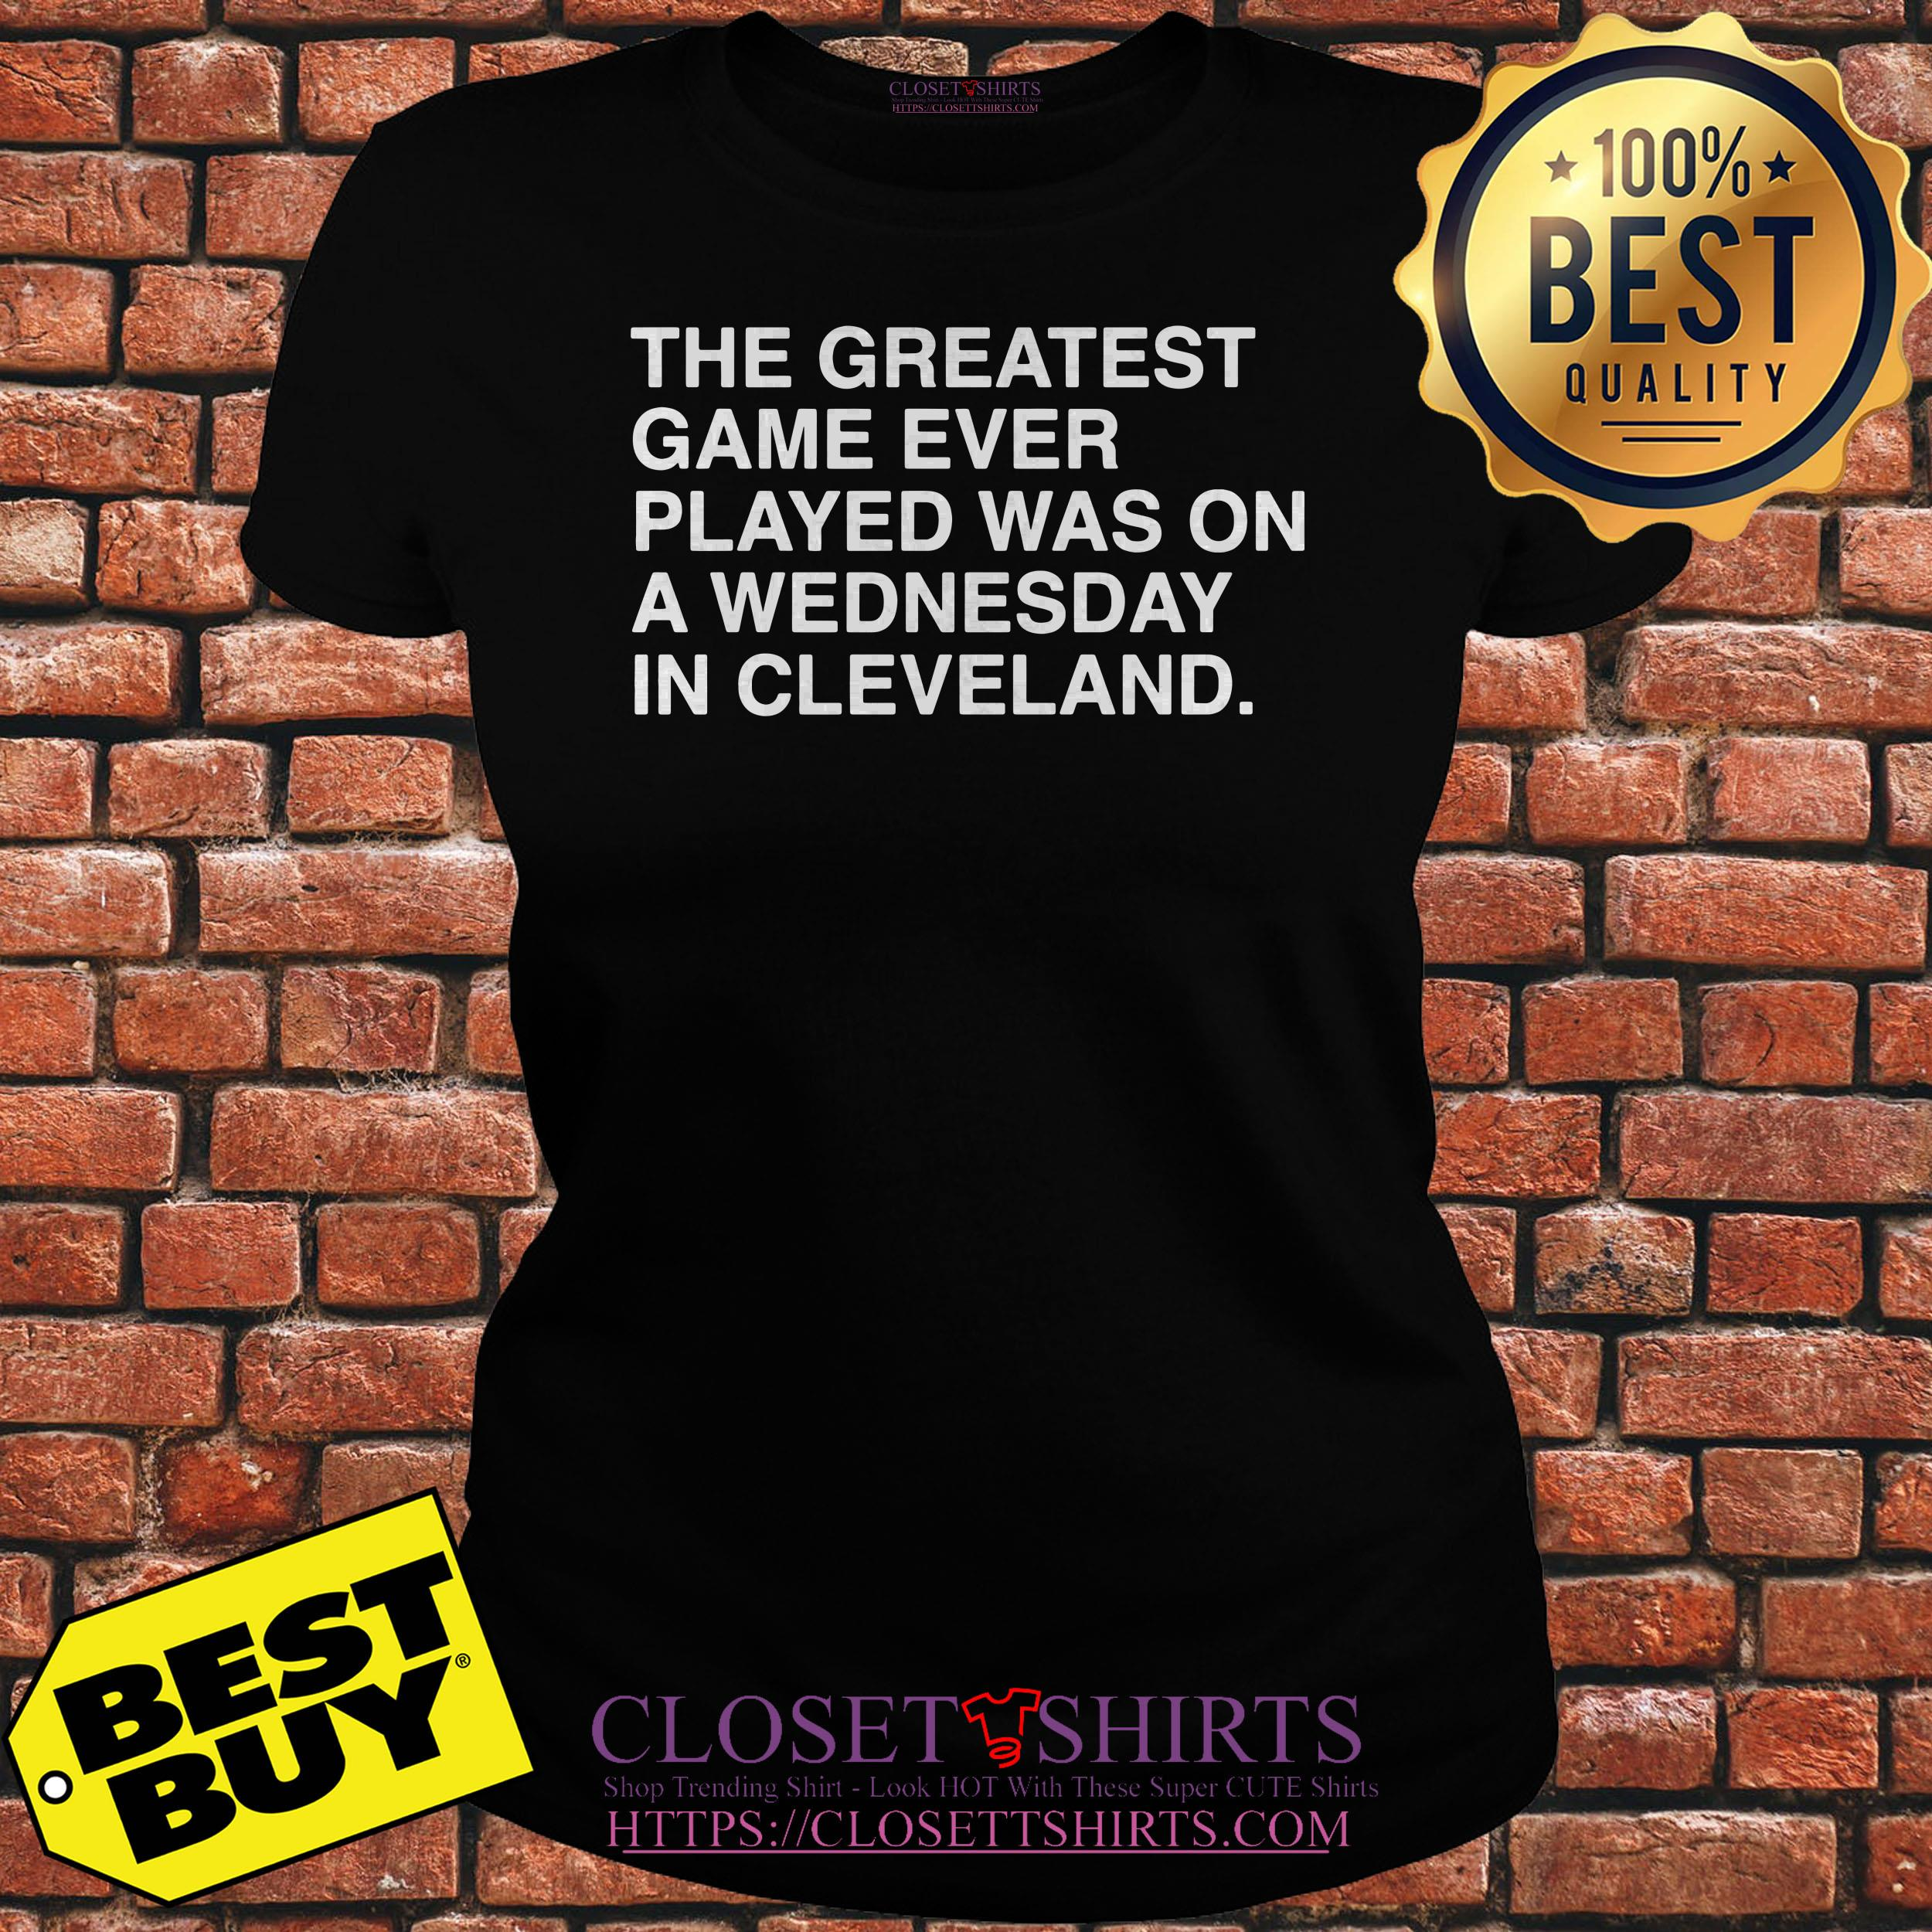 The Greatest Game Ever Played Was On A Wednesday In Cleveland ladies tee